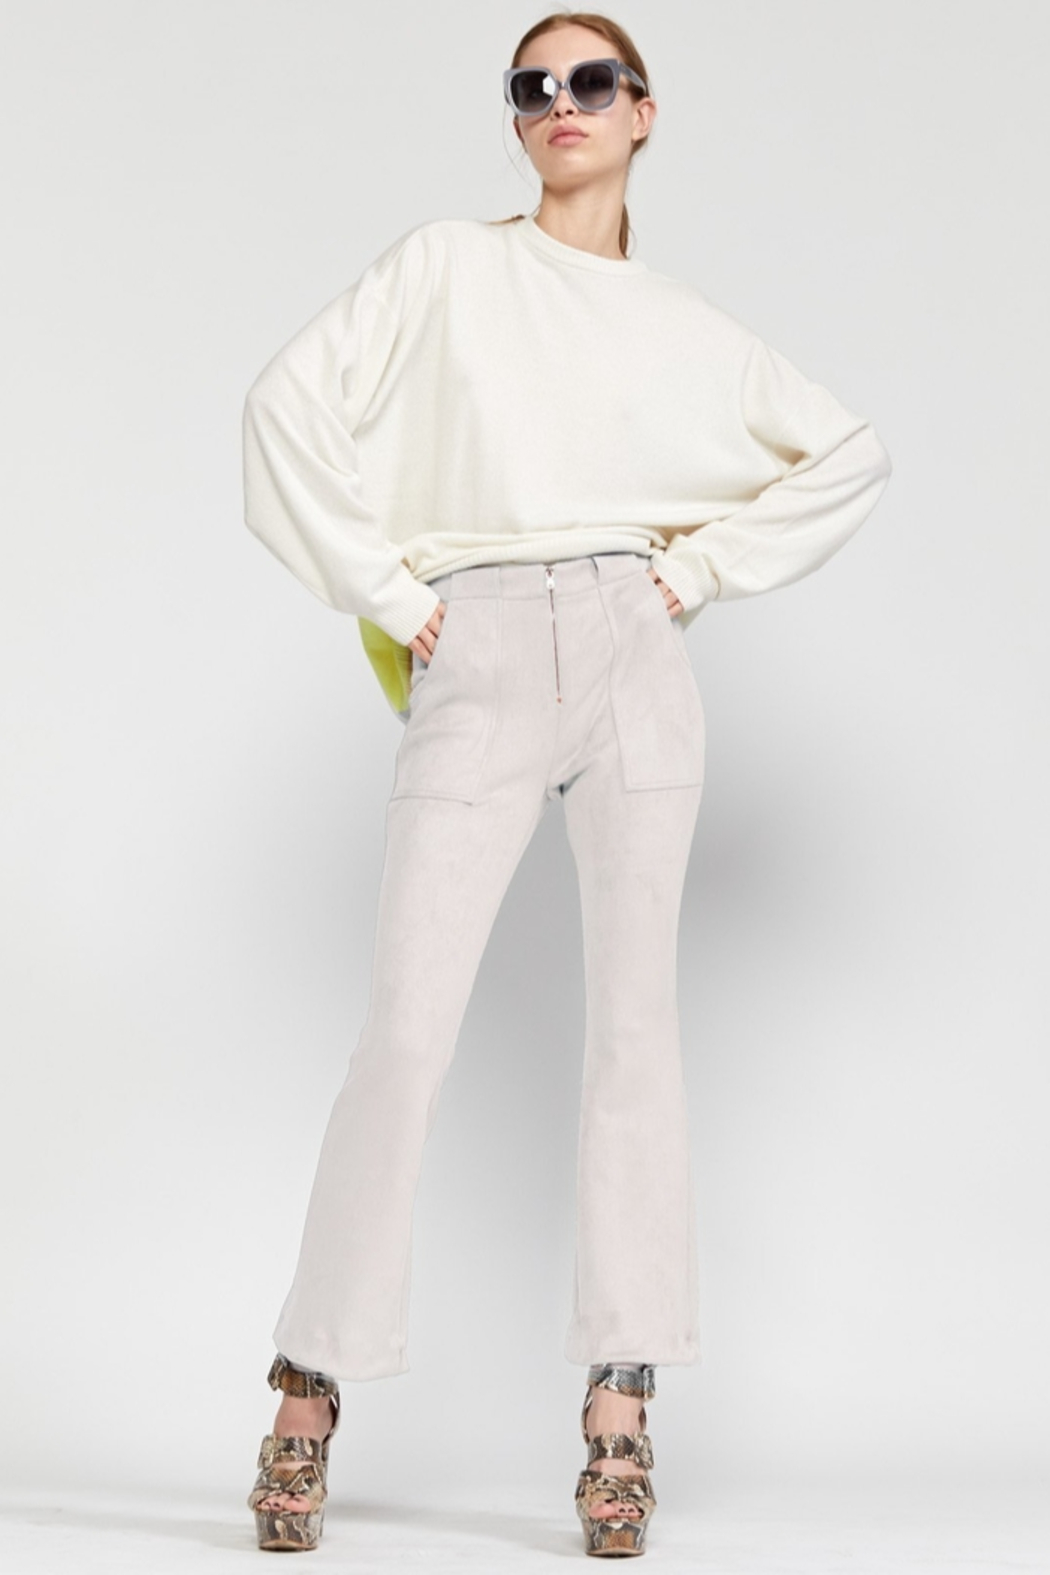 Cynthia Rowley Nadia Stretch Faux-suede Flared Pant - Main Image